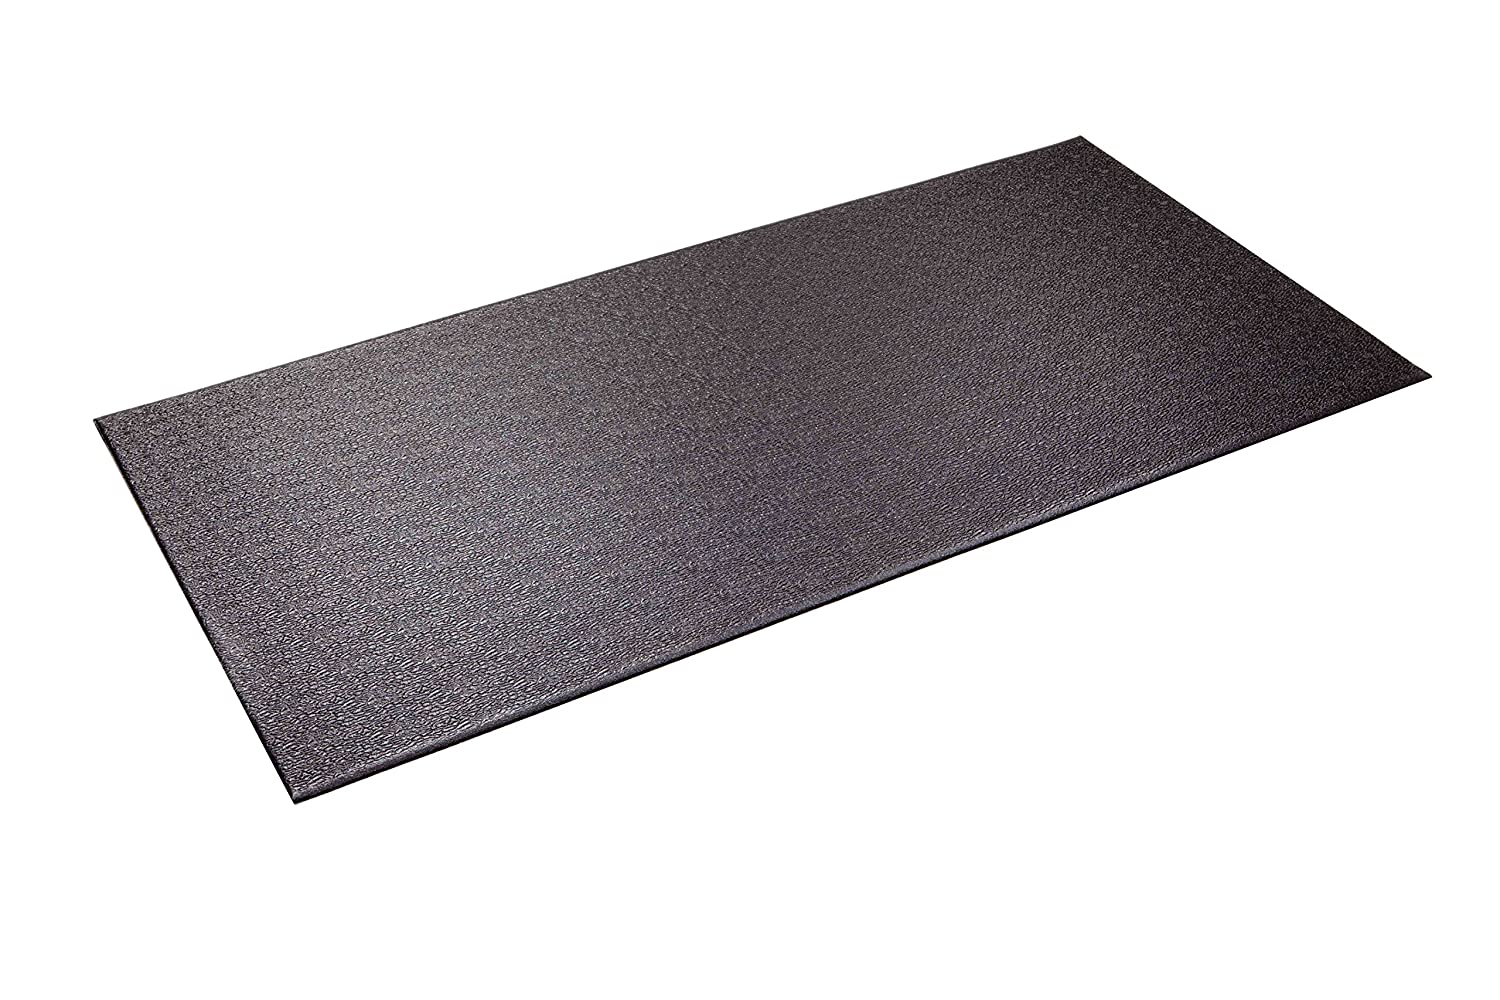 SuperMats Heavy Duty Equipment Mat 13GS Made in U.S.A. for Indoor Cycles Recumbent Bikes Upright Exercise Bikes and Steppers (2.5 Feet x 5 Feet) (30-Inch x 60-Inch)